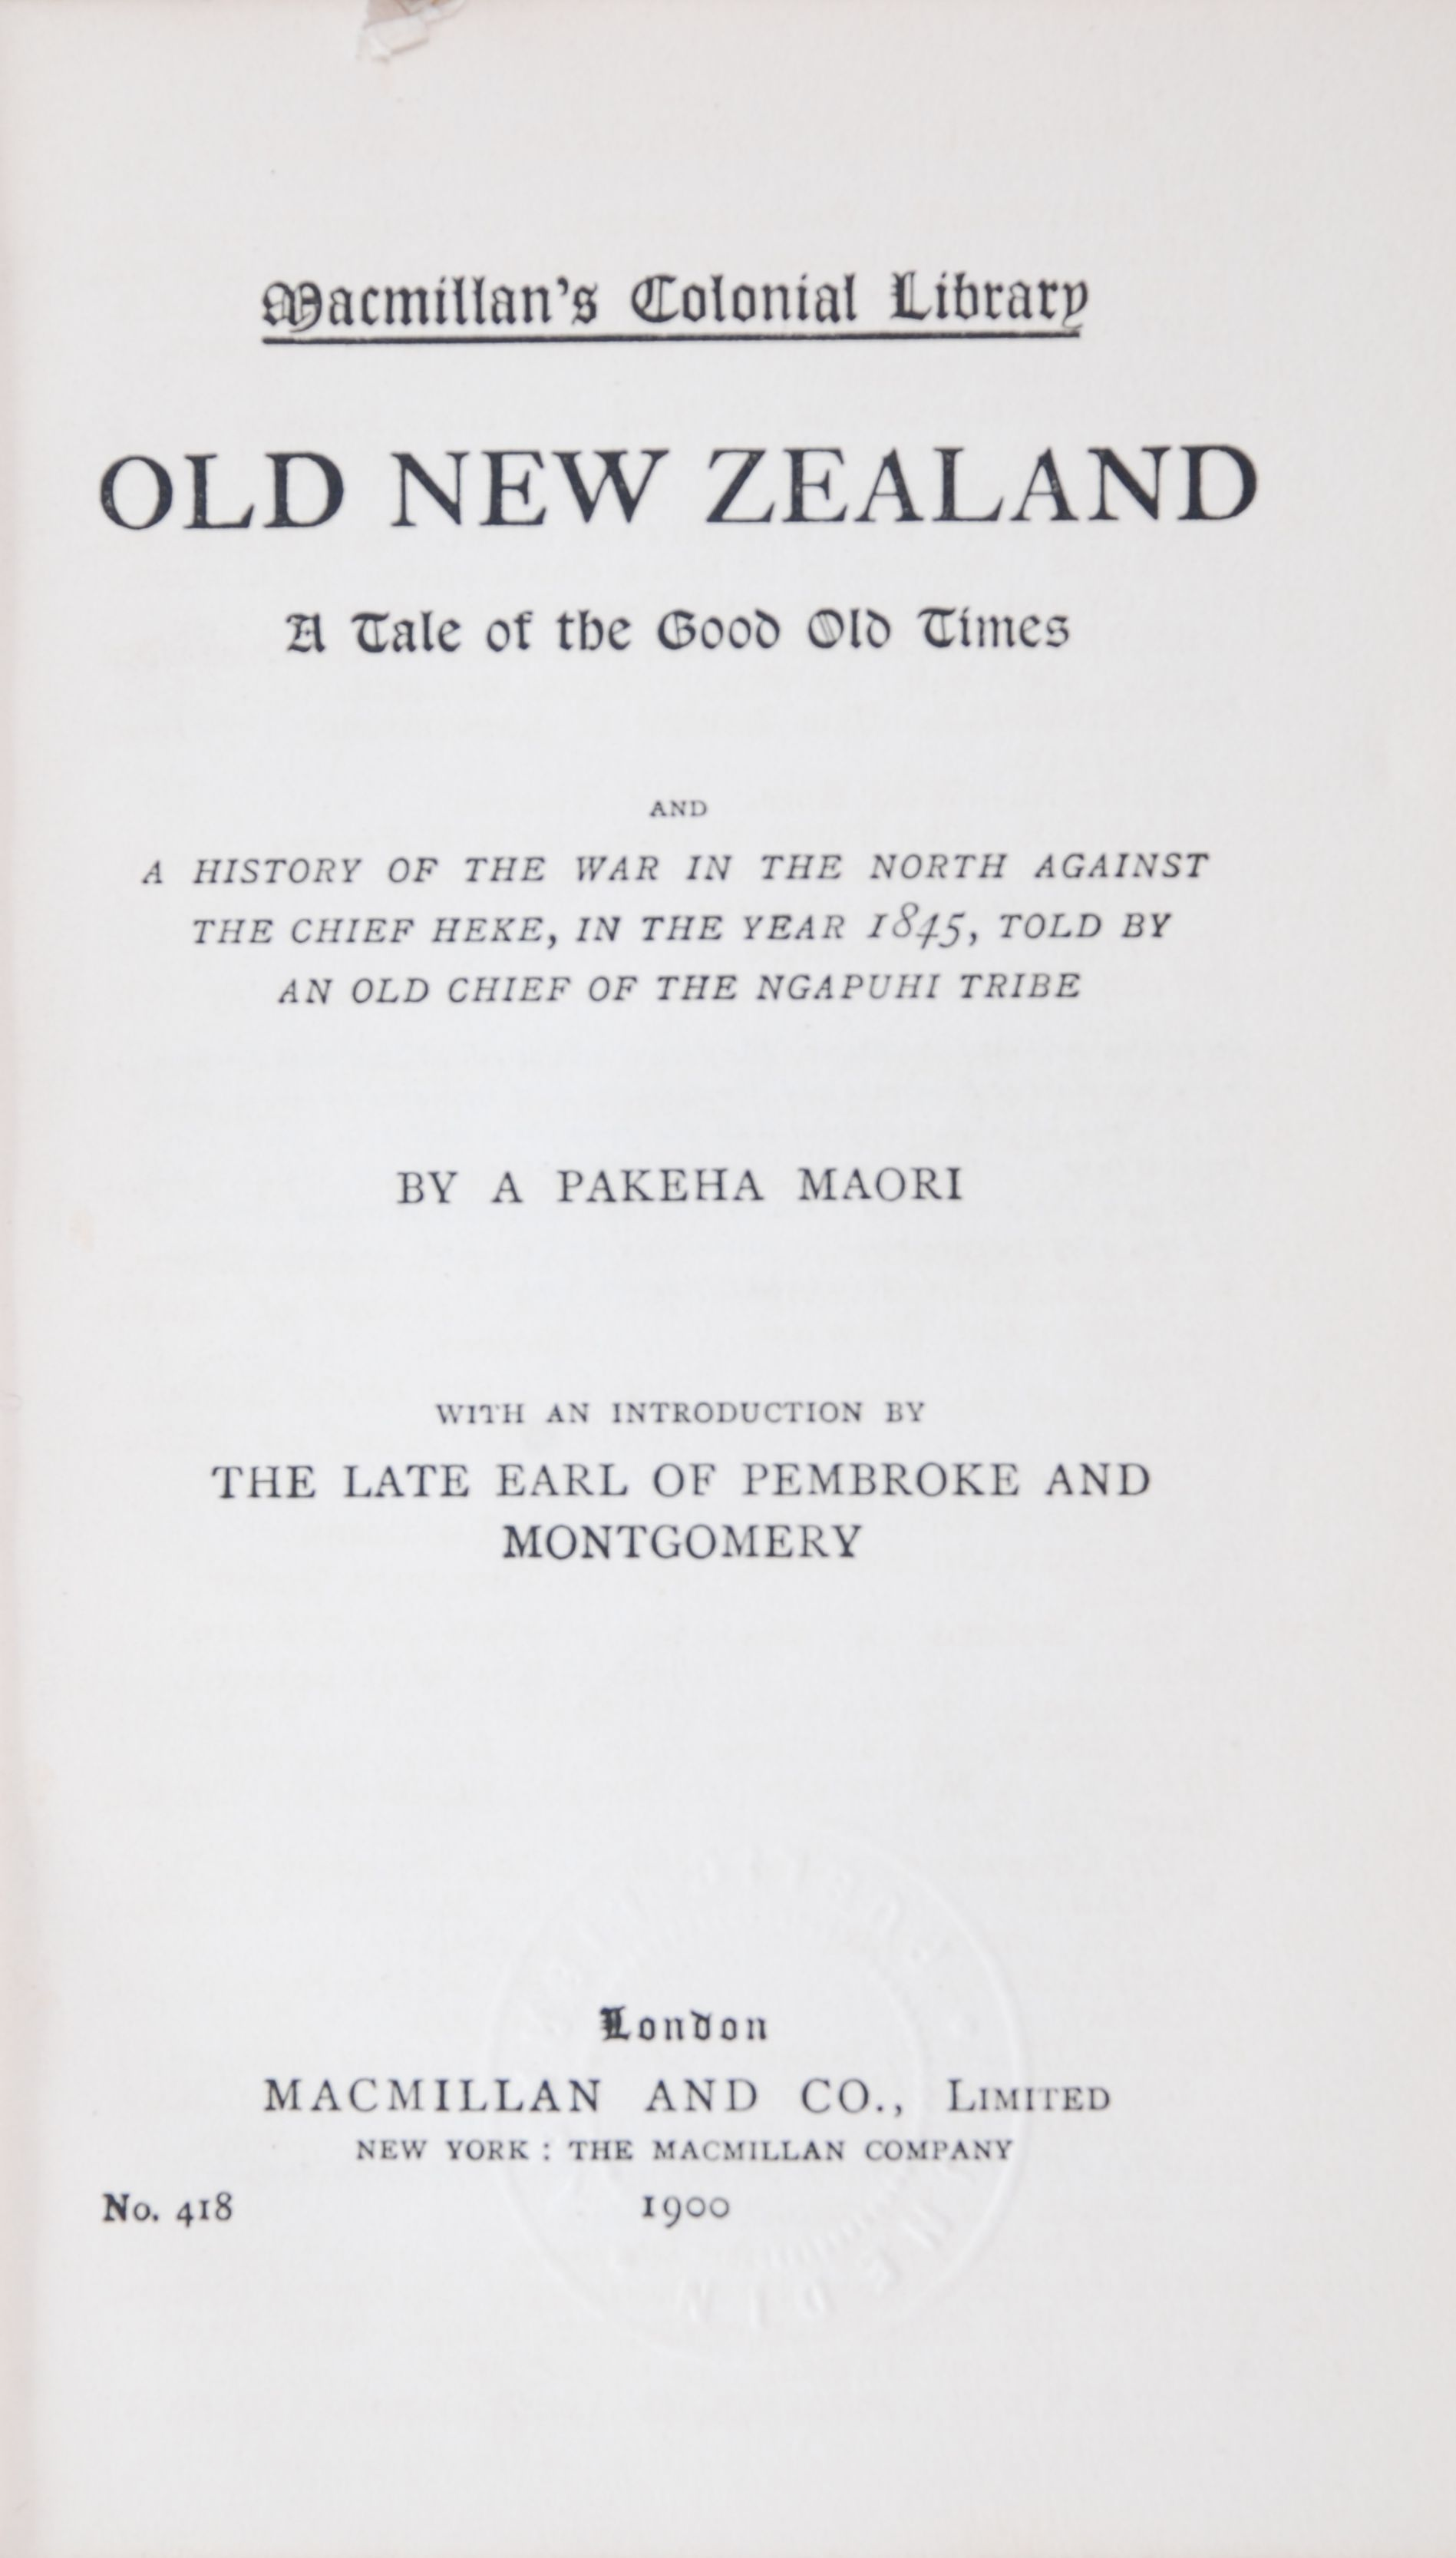 F. E. Maning. Old New Zealand: A tale of the good old times and a history of the war in the North against the chief Heke, in the year 1845, told by an old chief of the Ngapuhi tribe.  London: Macmillan and Co. Limited, 1900.